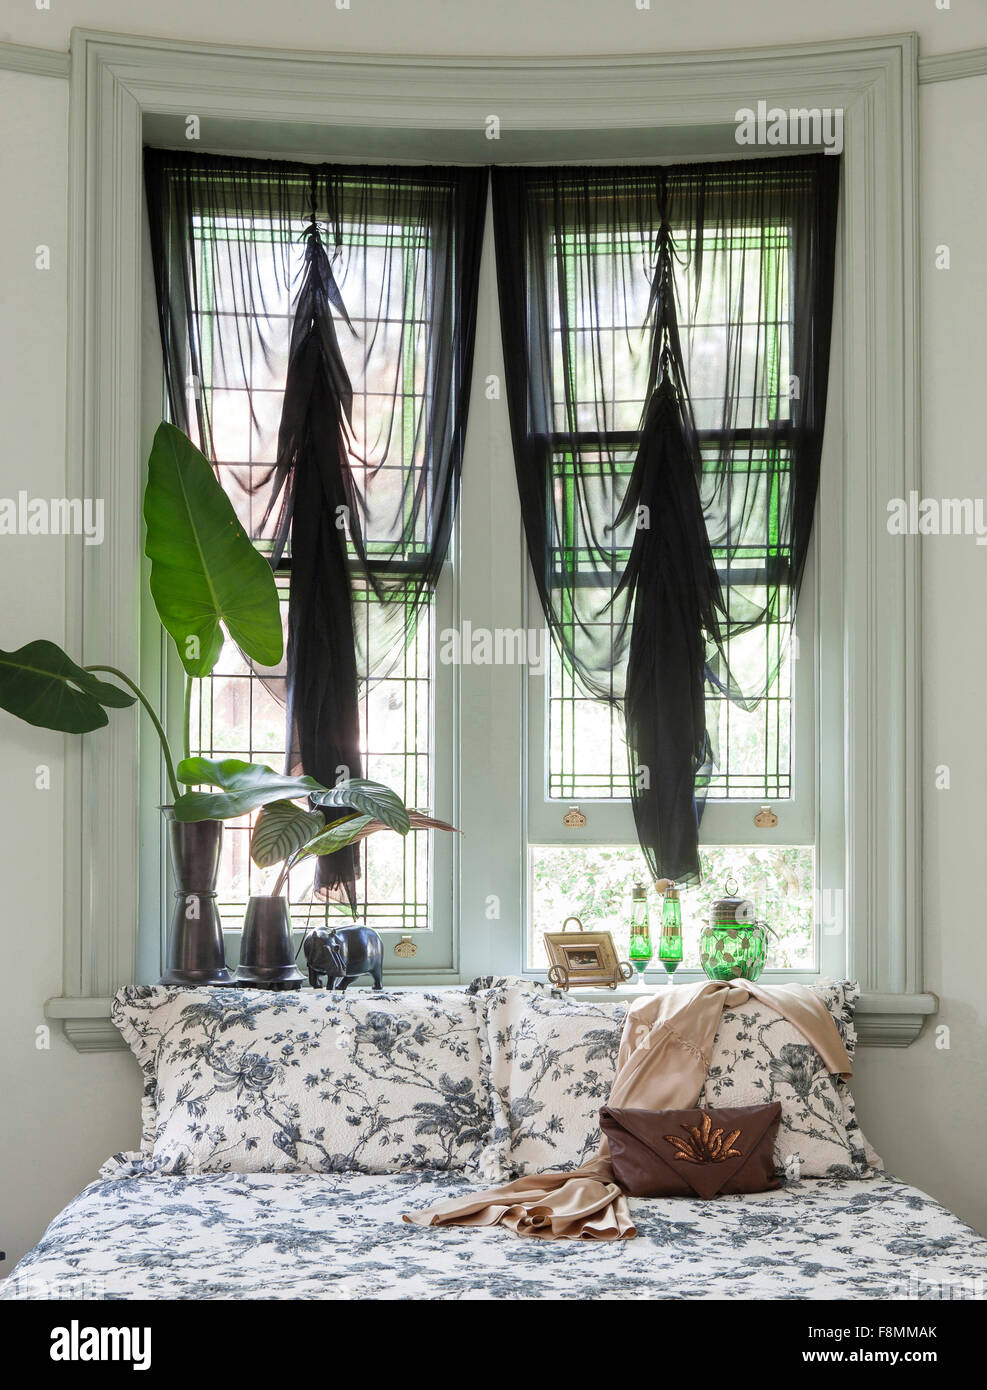 The home of designer Erica Pols. A bedroom. Windows drapped with ruched black net curtains. Floral bedlinen on a - Stock Image